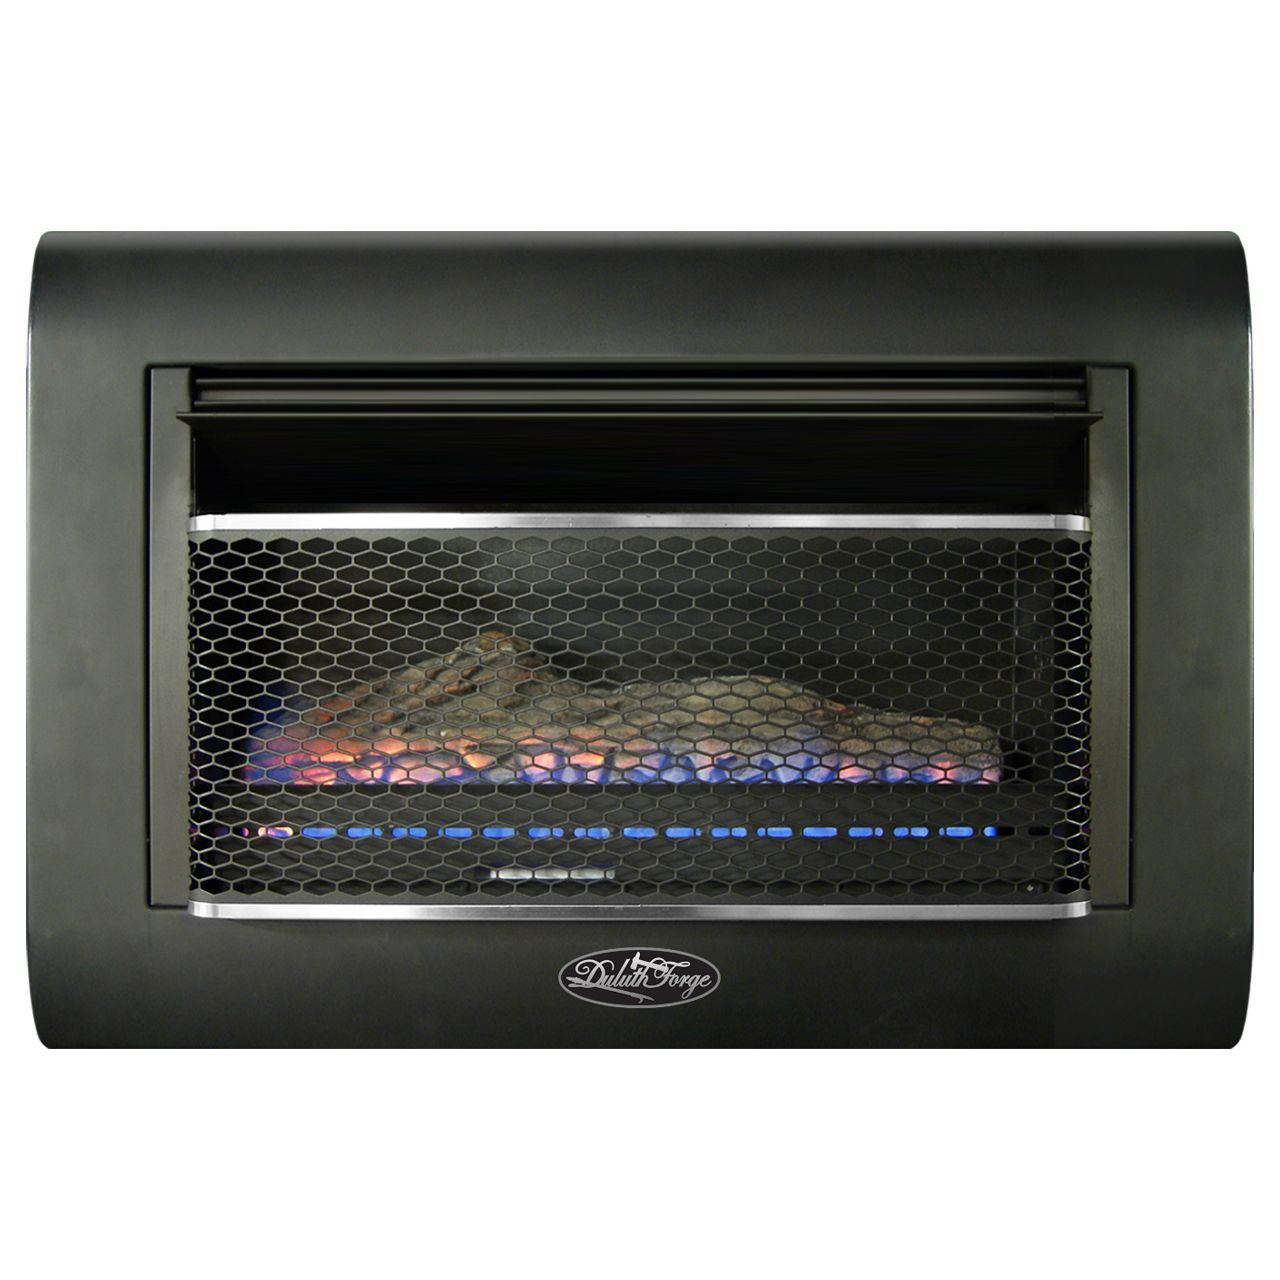 Btu Gas Fireplace Duluth Forge Ventless Linear Wall Gas Fireplace 26 000 Btu T Stat Model Df300l